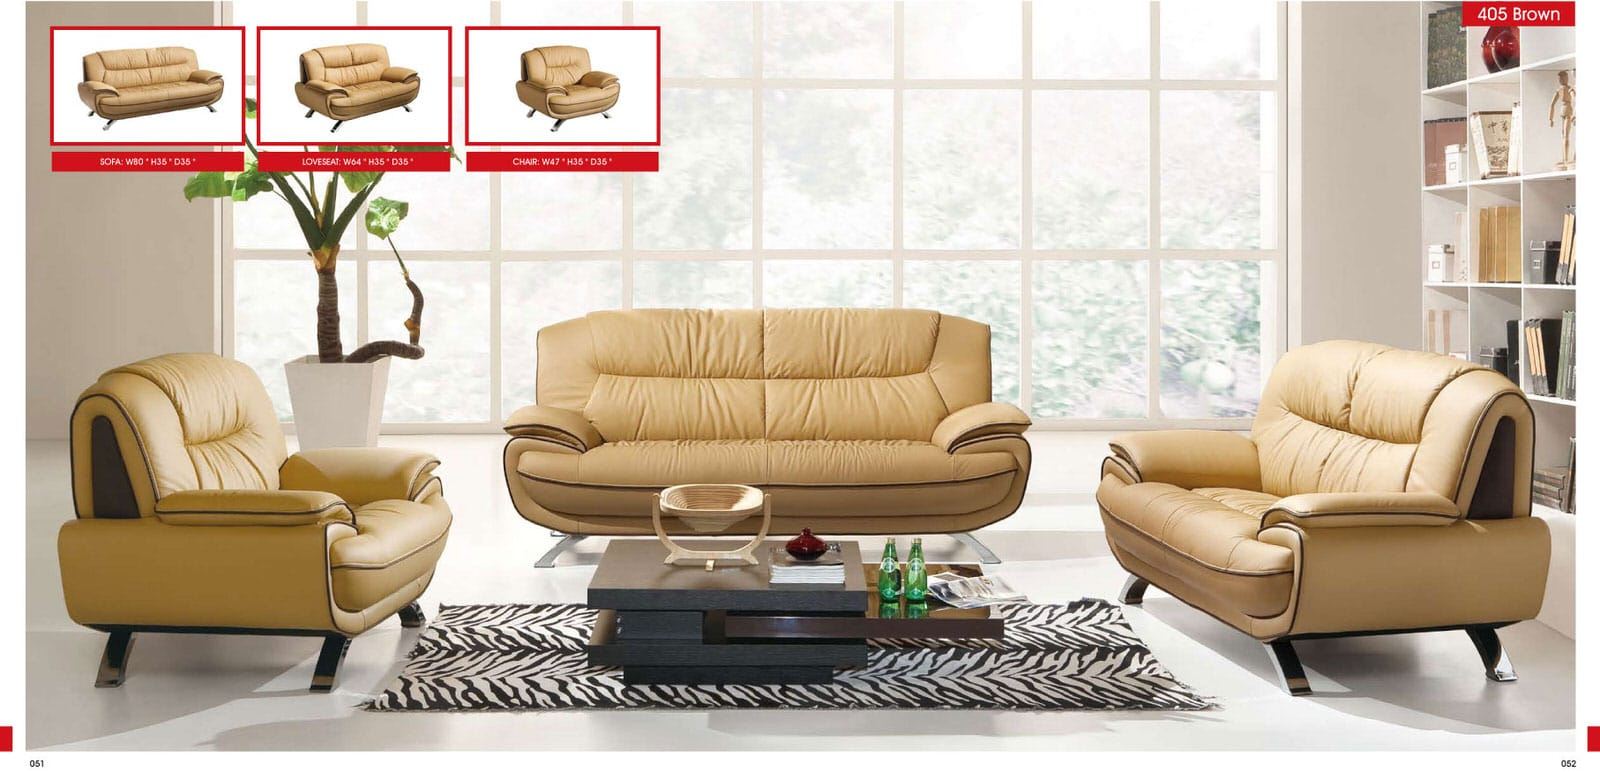 405 brown leather sofa set by esf for The living room furniture